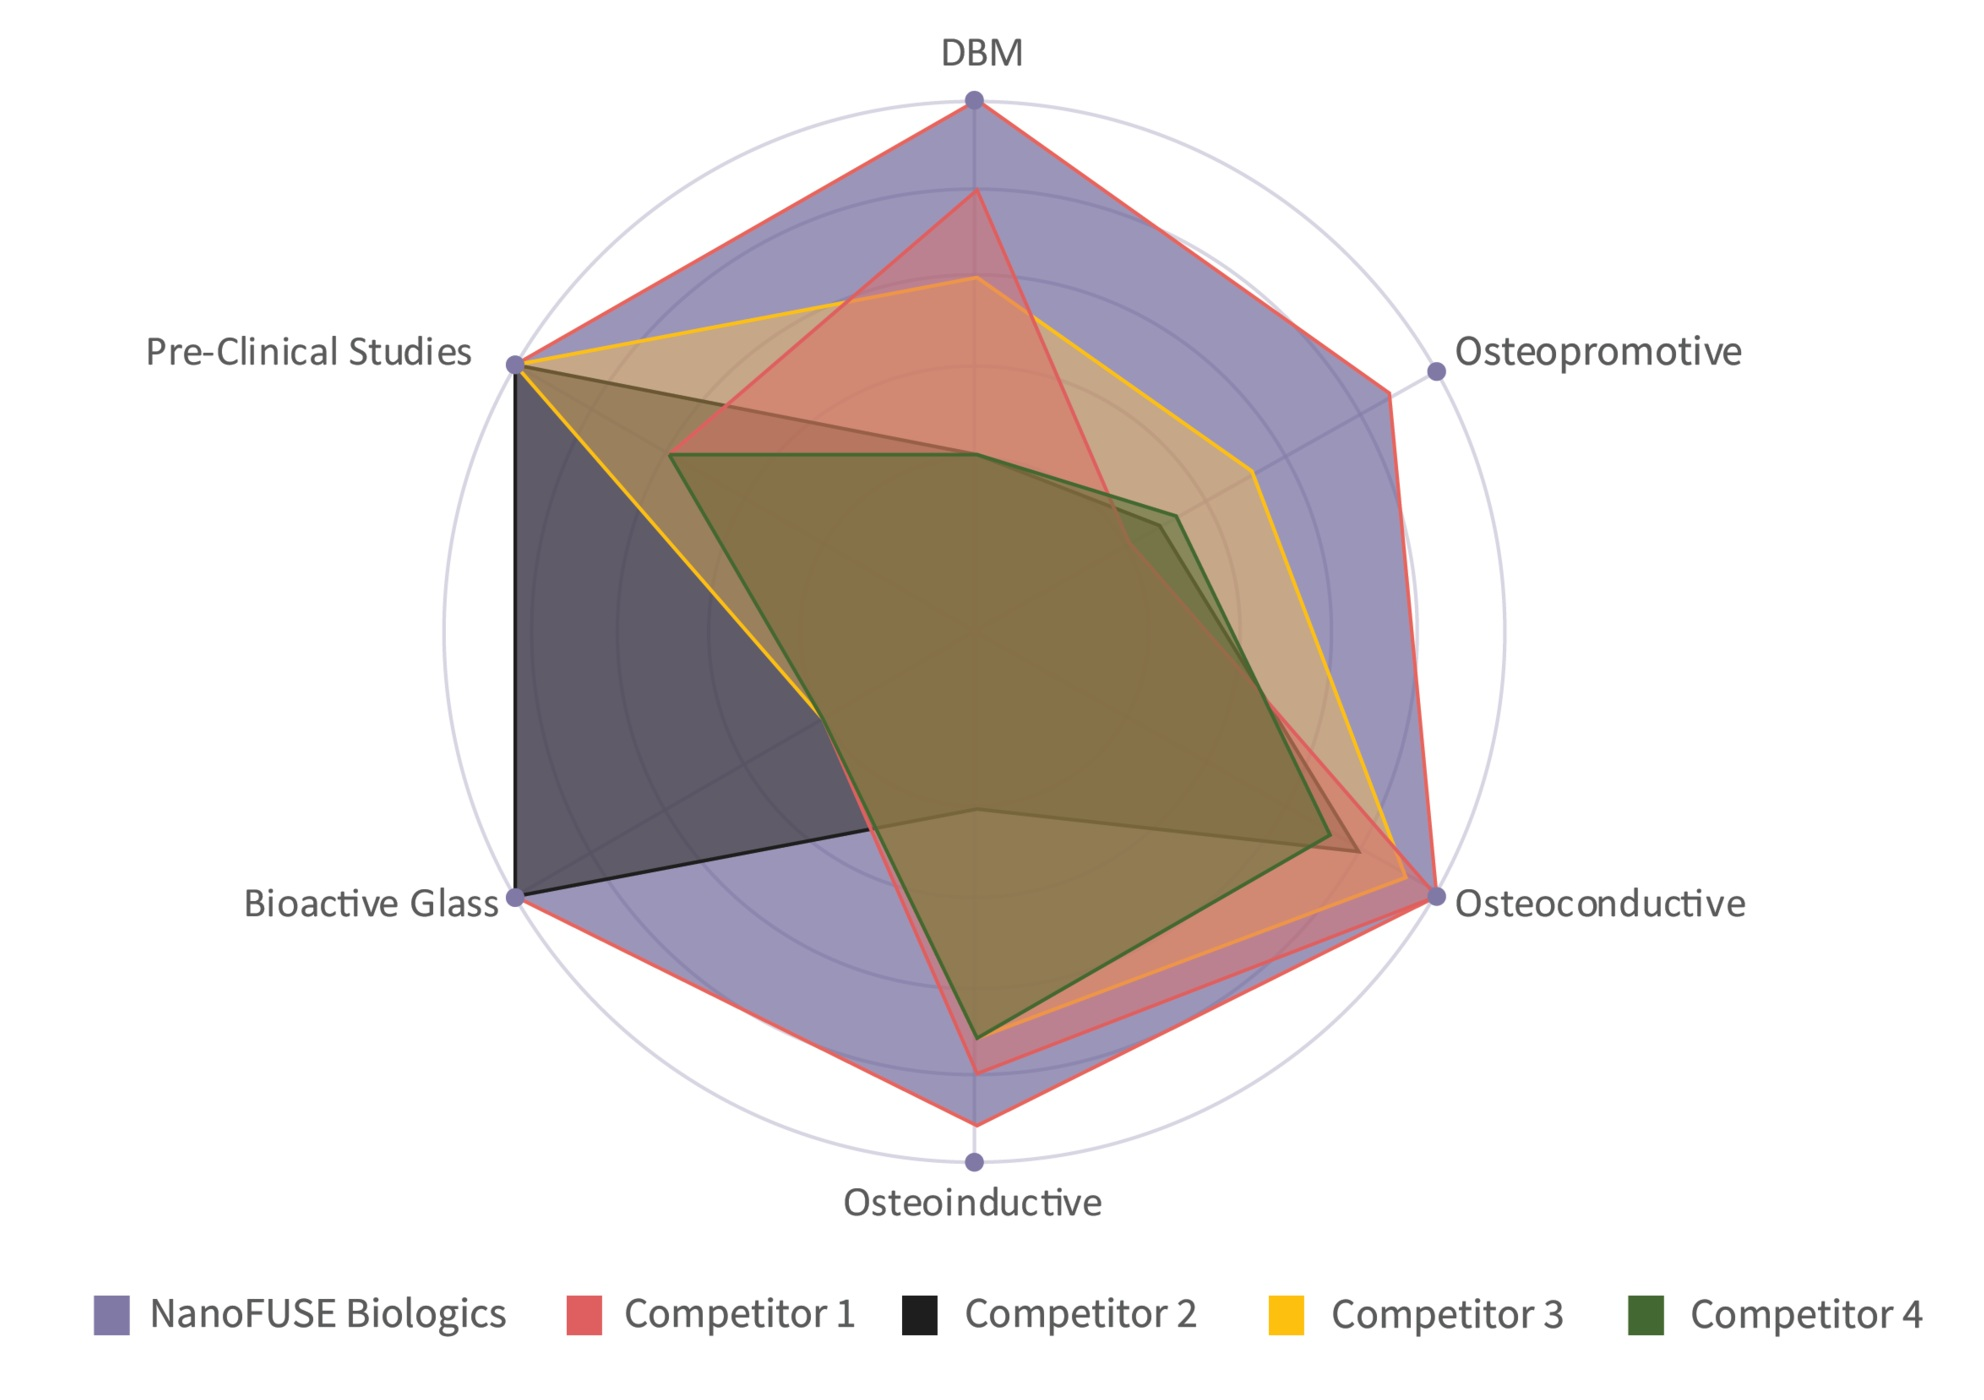 NF_Images_Spidergraph_Competition_v03.jpg